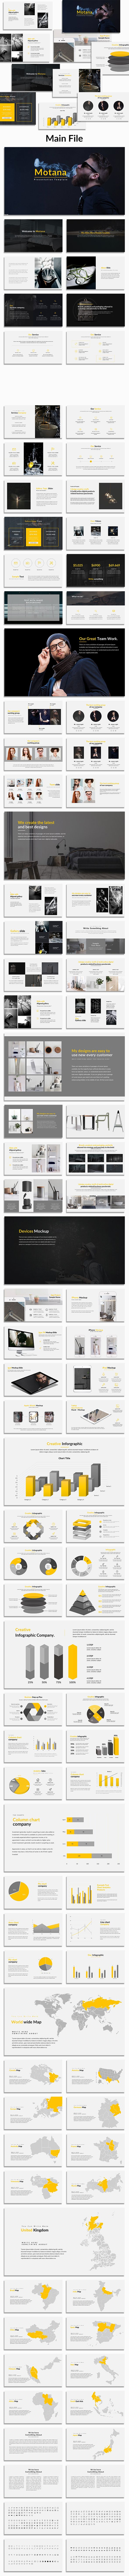 Motana Multipurpose PowerPoint Template | Template, Keynote and ...